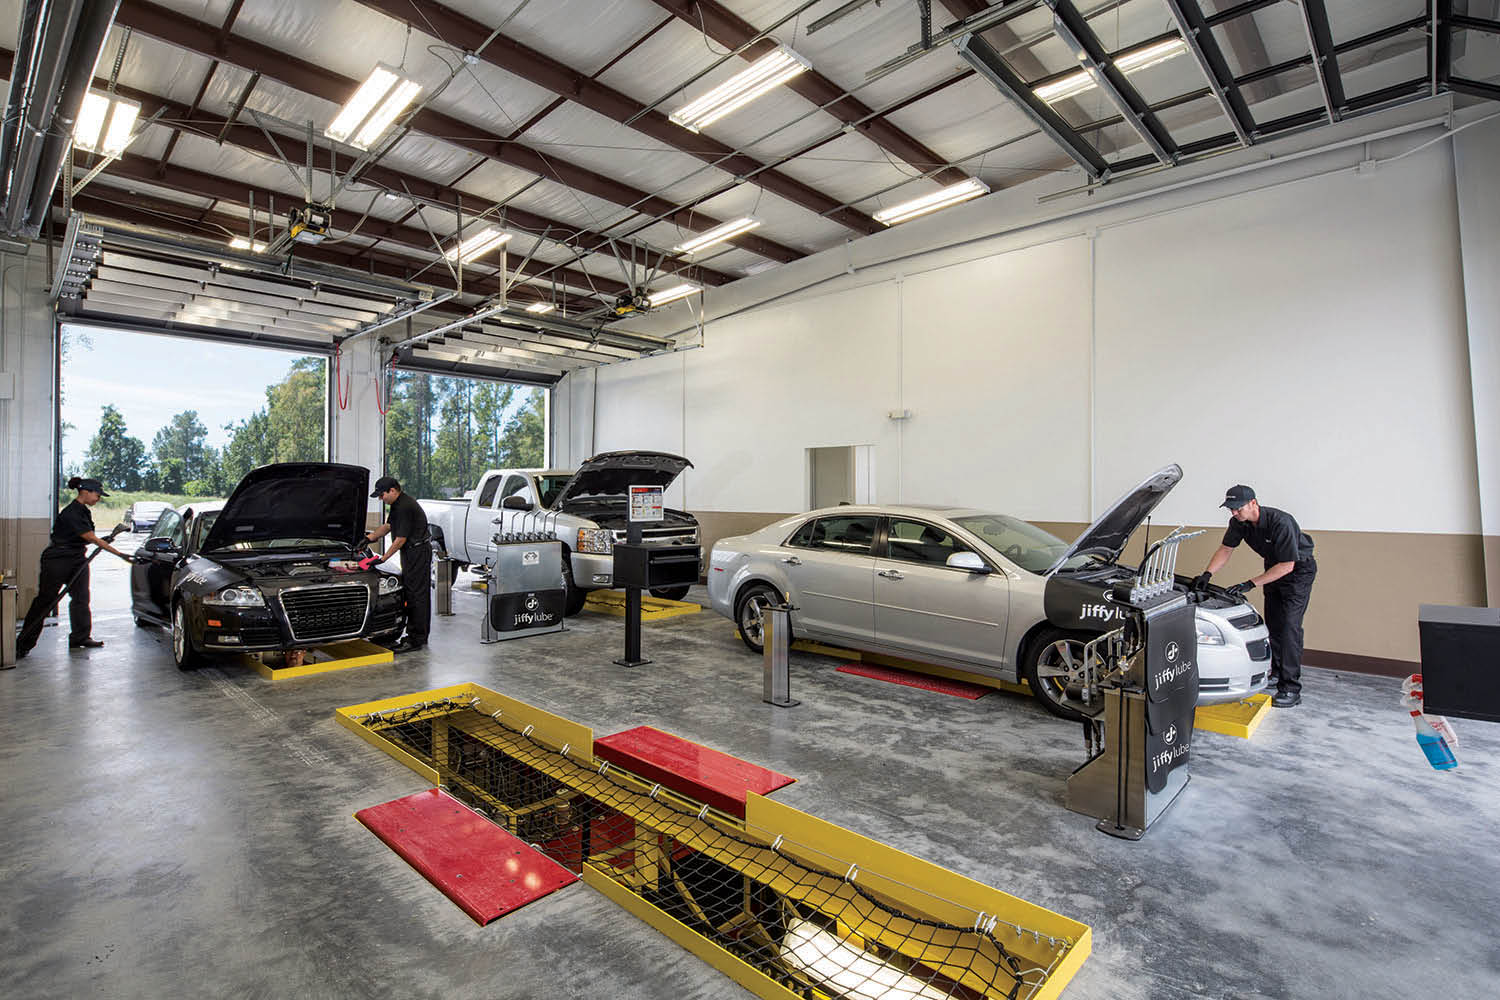 Jiffy Lube service bays for oil changes, auto service, tire rotations in Bellflower.